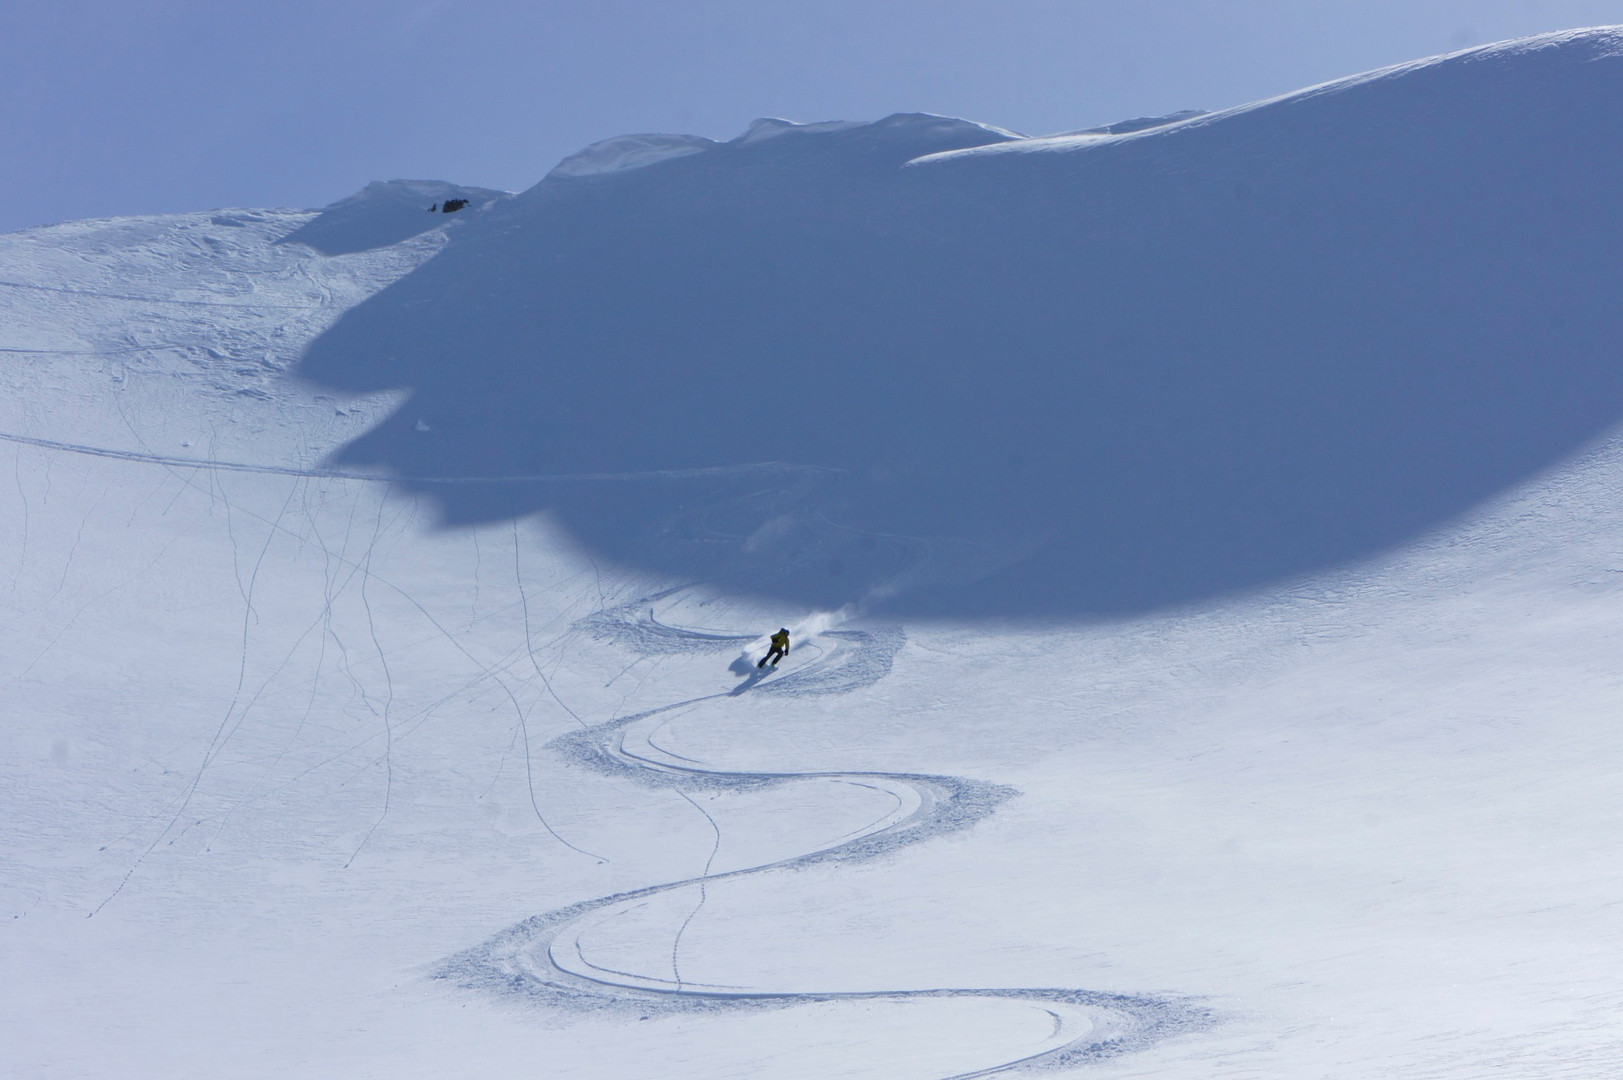 More great turns